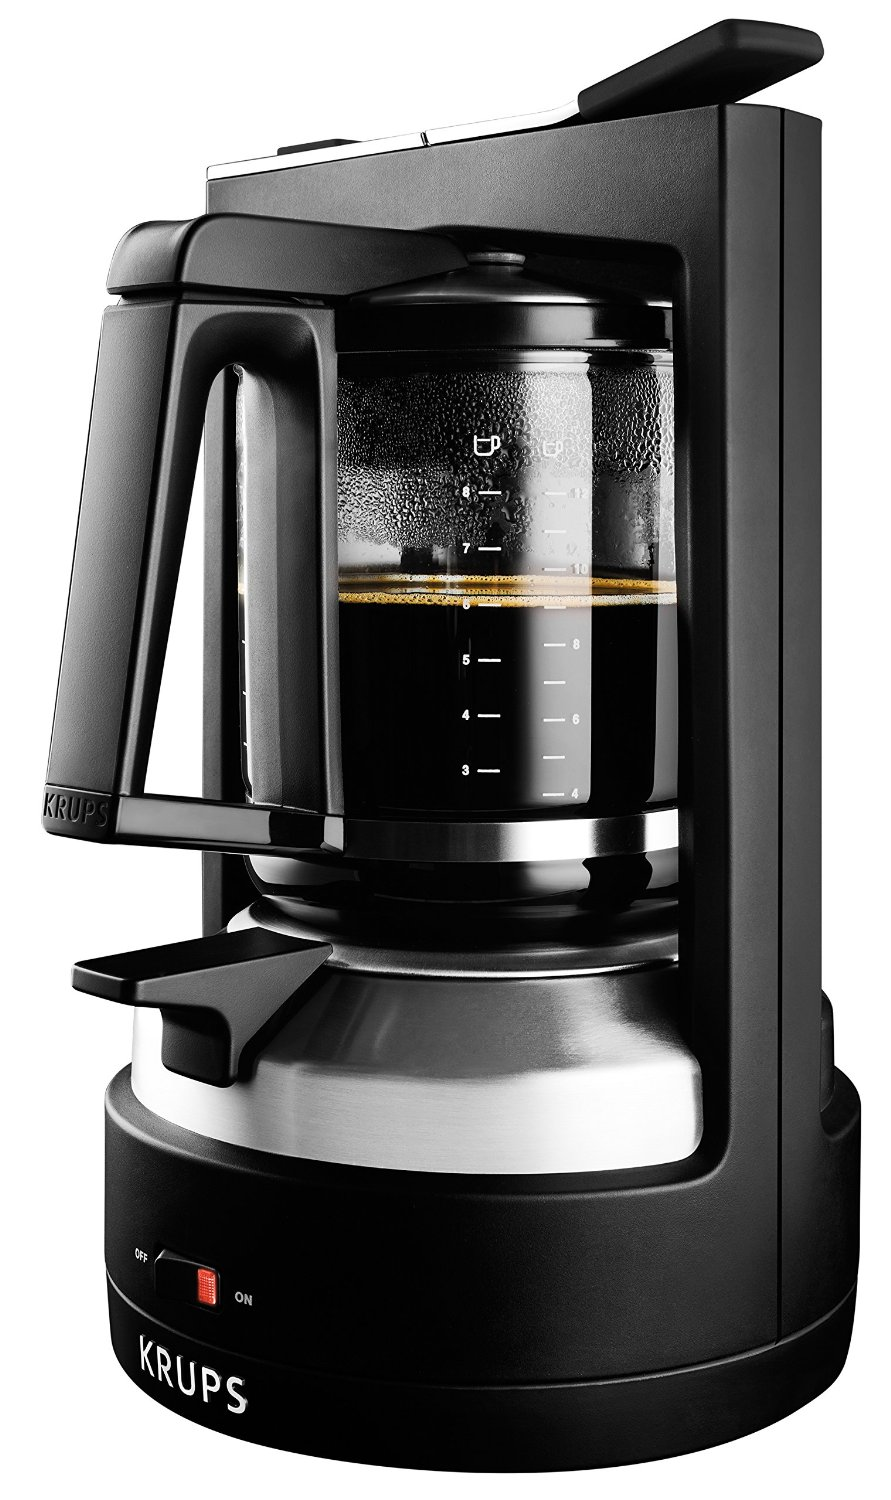 2016 best drip coffee maker product reviews best of 2017 for Best coffee maker